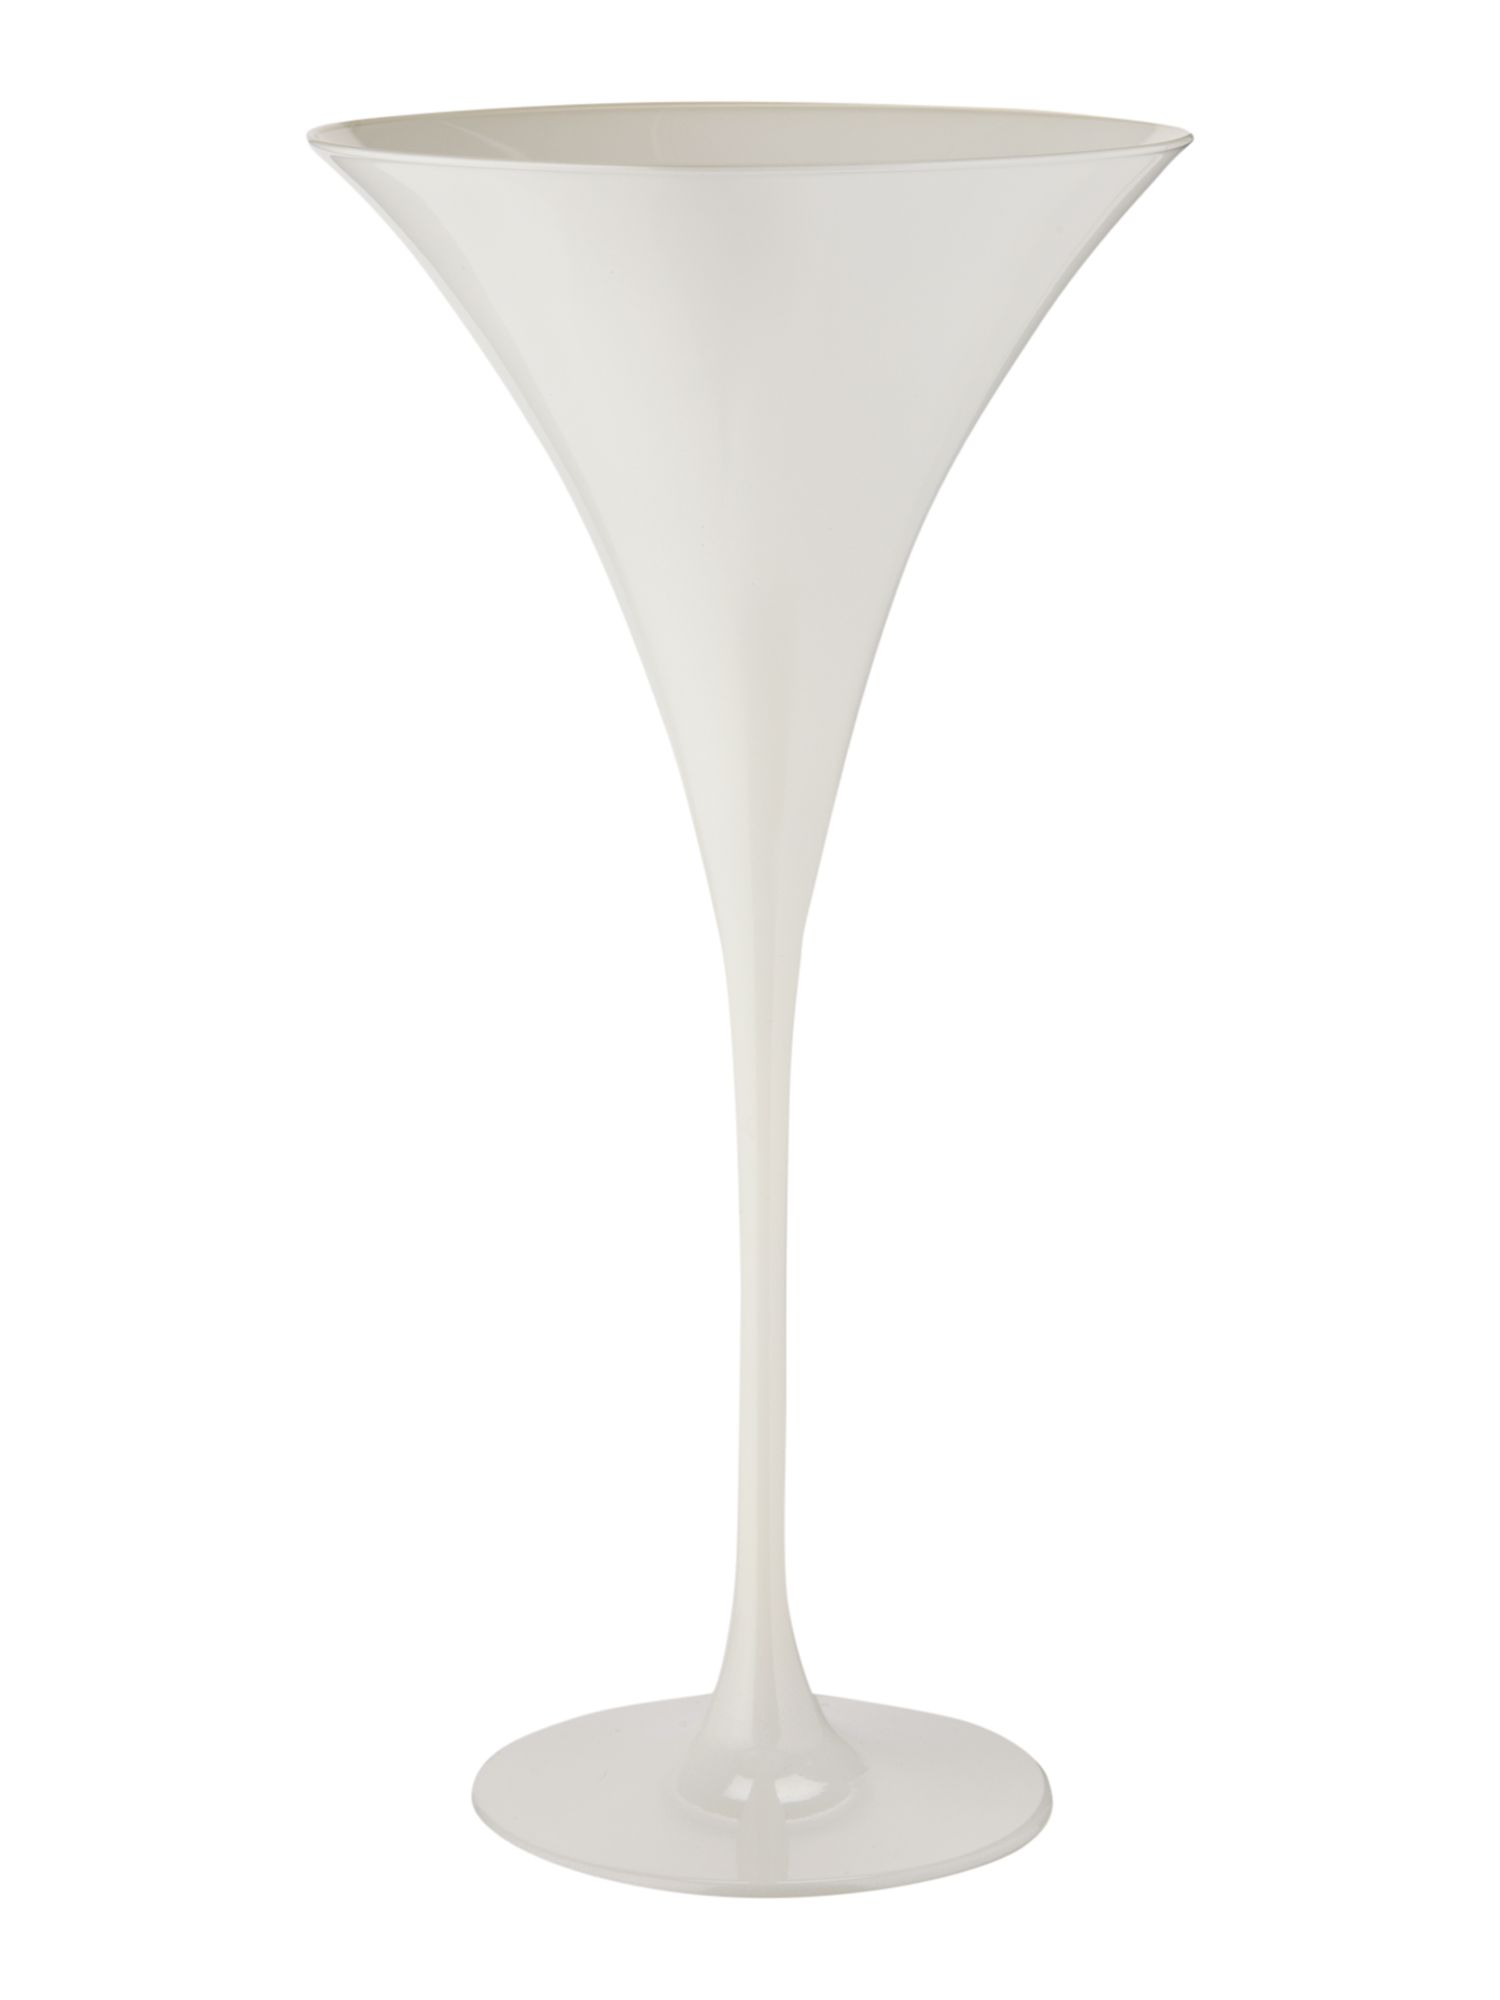 Ghost white martini glass